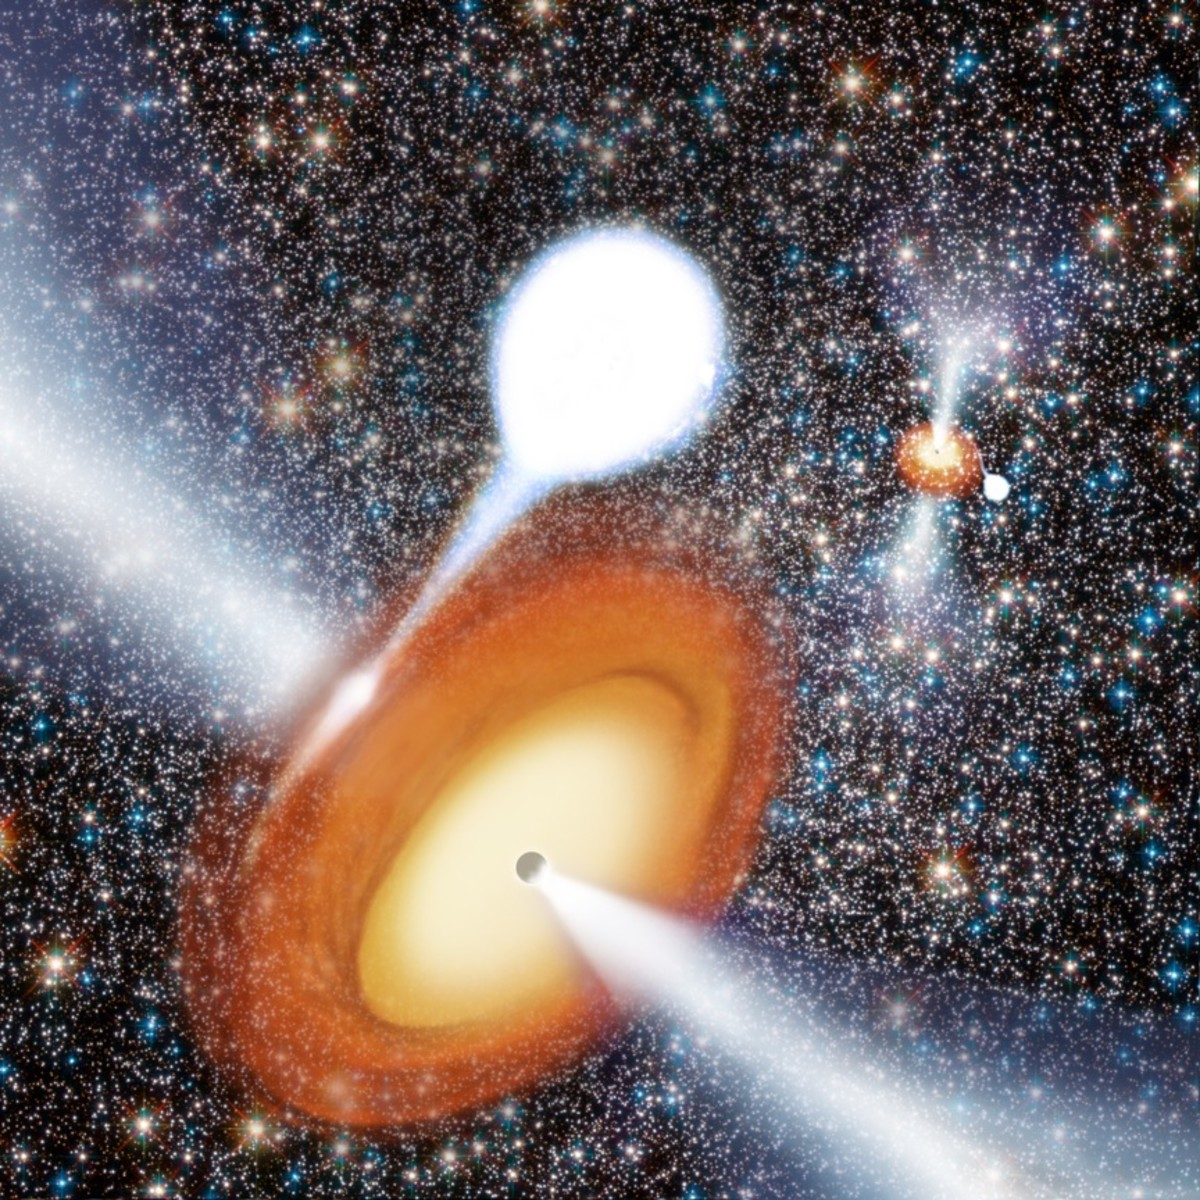 Artist concept of a black hole taking matter from a companion star.